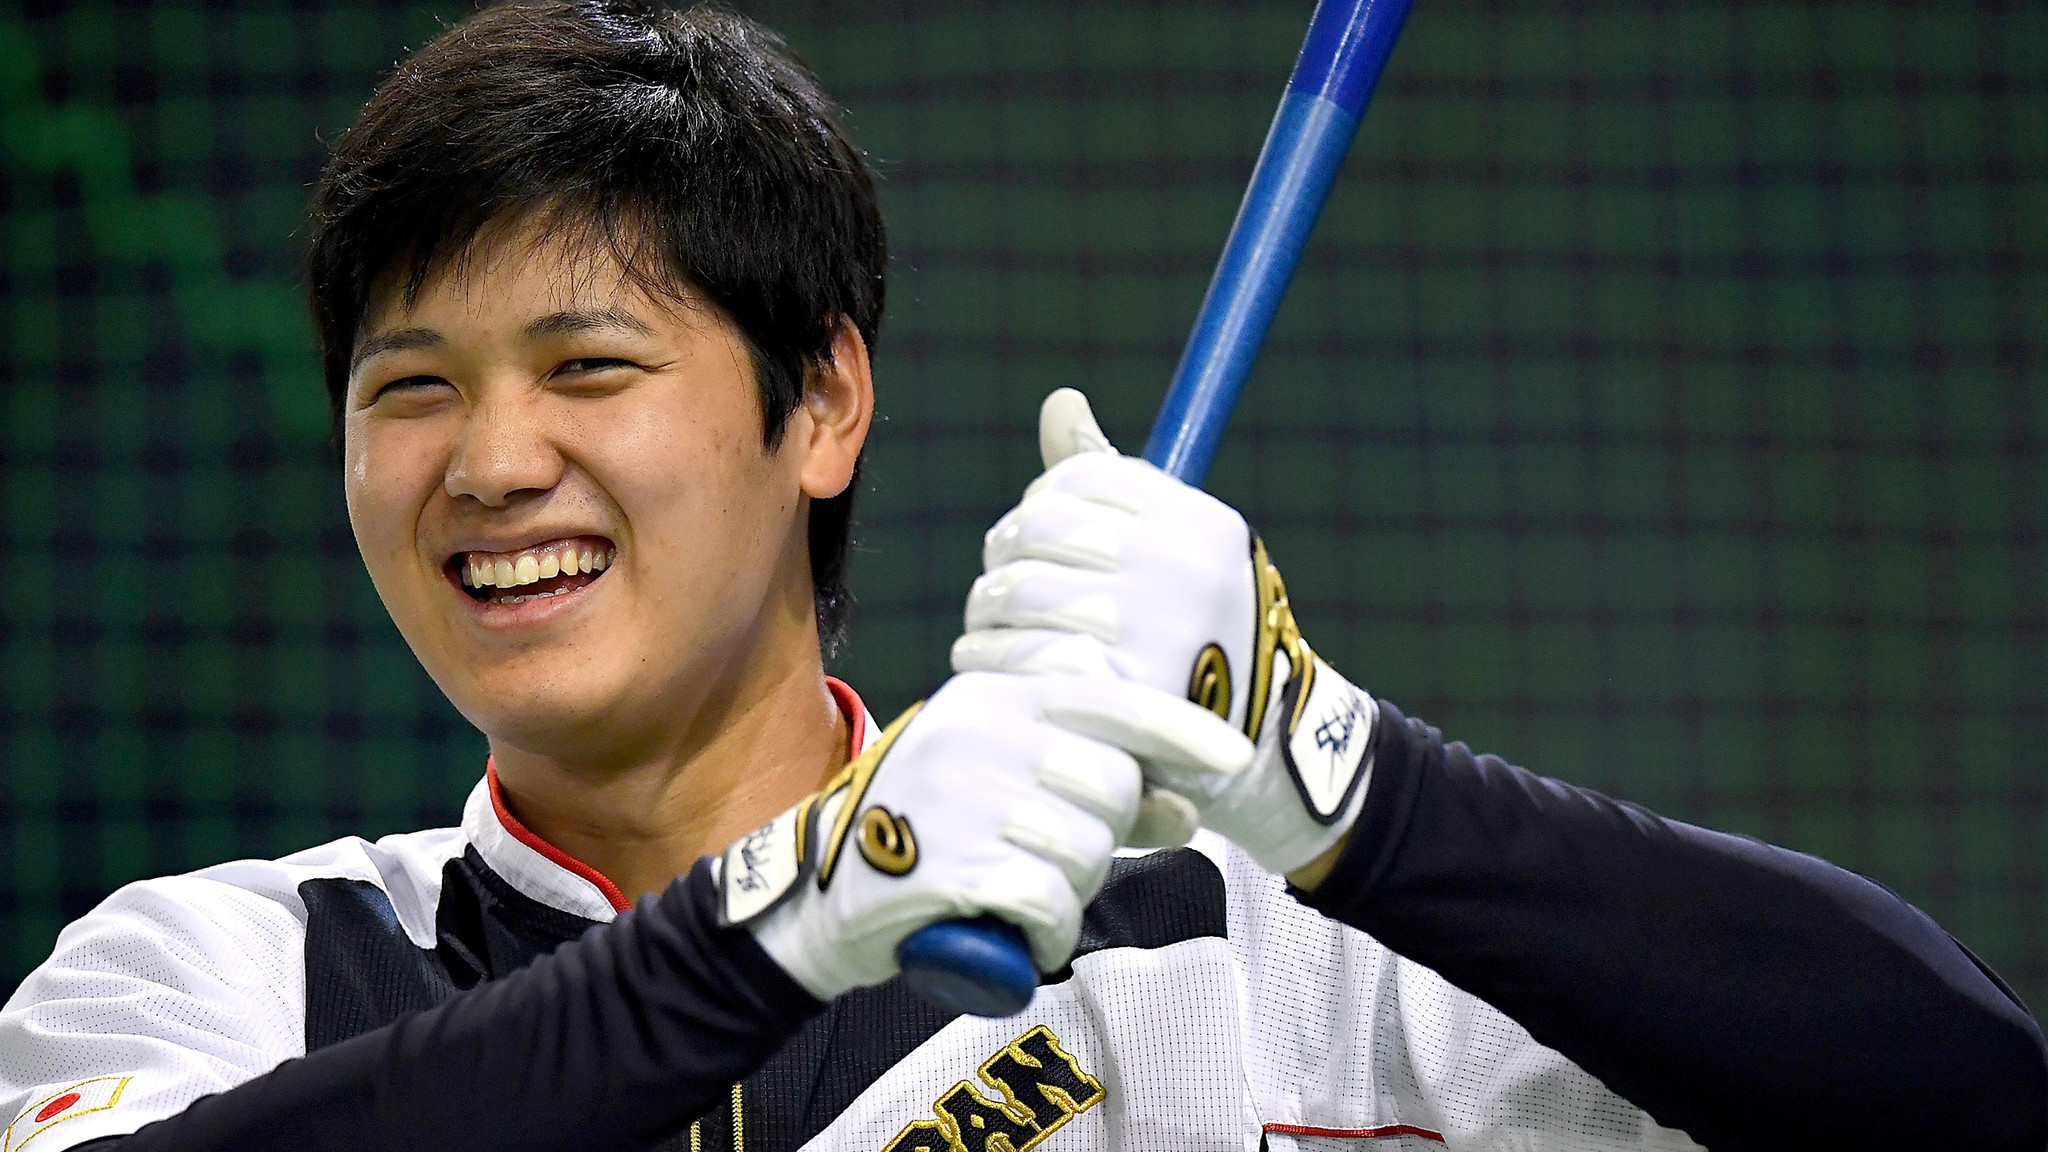 Shohei Ohtani warms up ahead of an international friendly game between Japan and the Netherlands at the Tokyo Dome on Nov. 12, 2016.